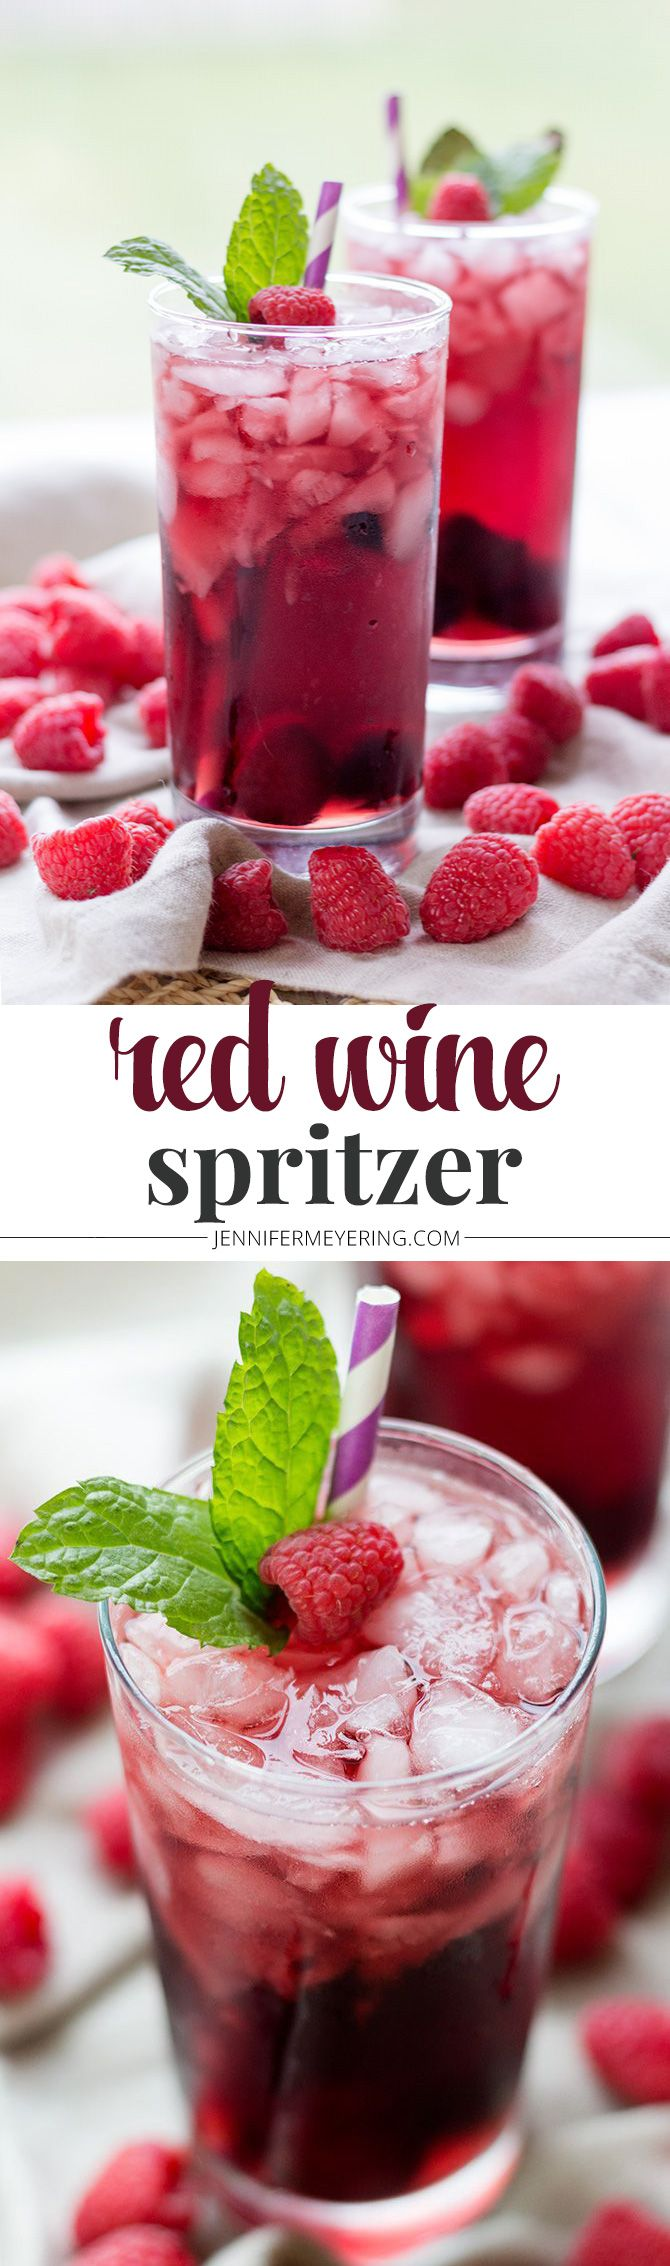 Red Wine Spritzer Jennifermeyering Com Http Www Winecoolerhub Com Newair Wine Coolers For Sale Red Wine Spritzer Wine Spritzer Wine Spritzer Recipe